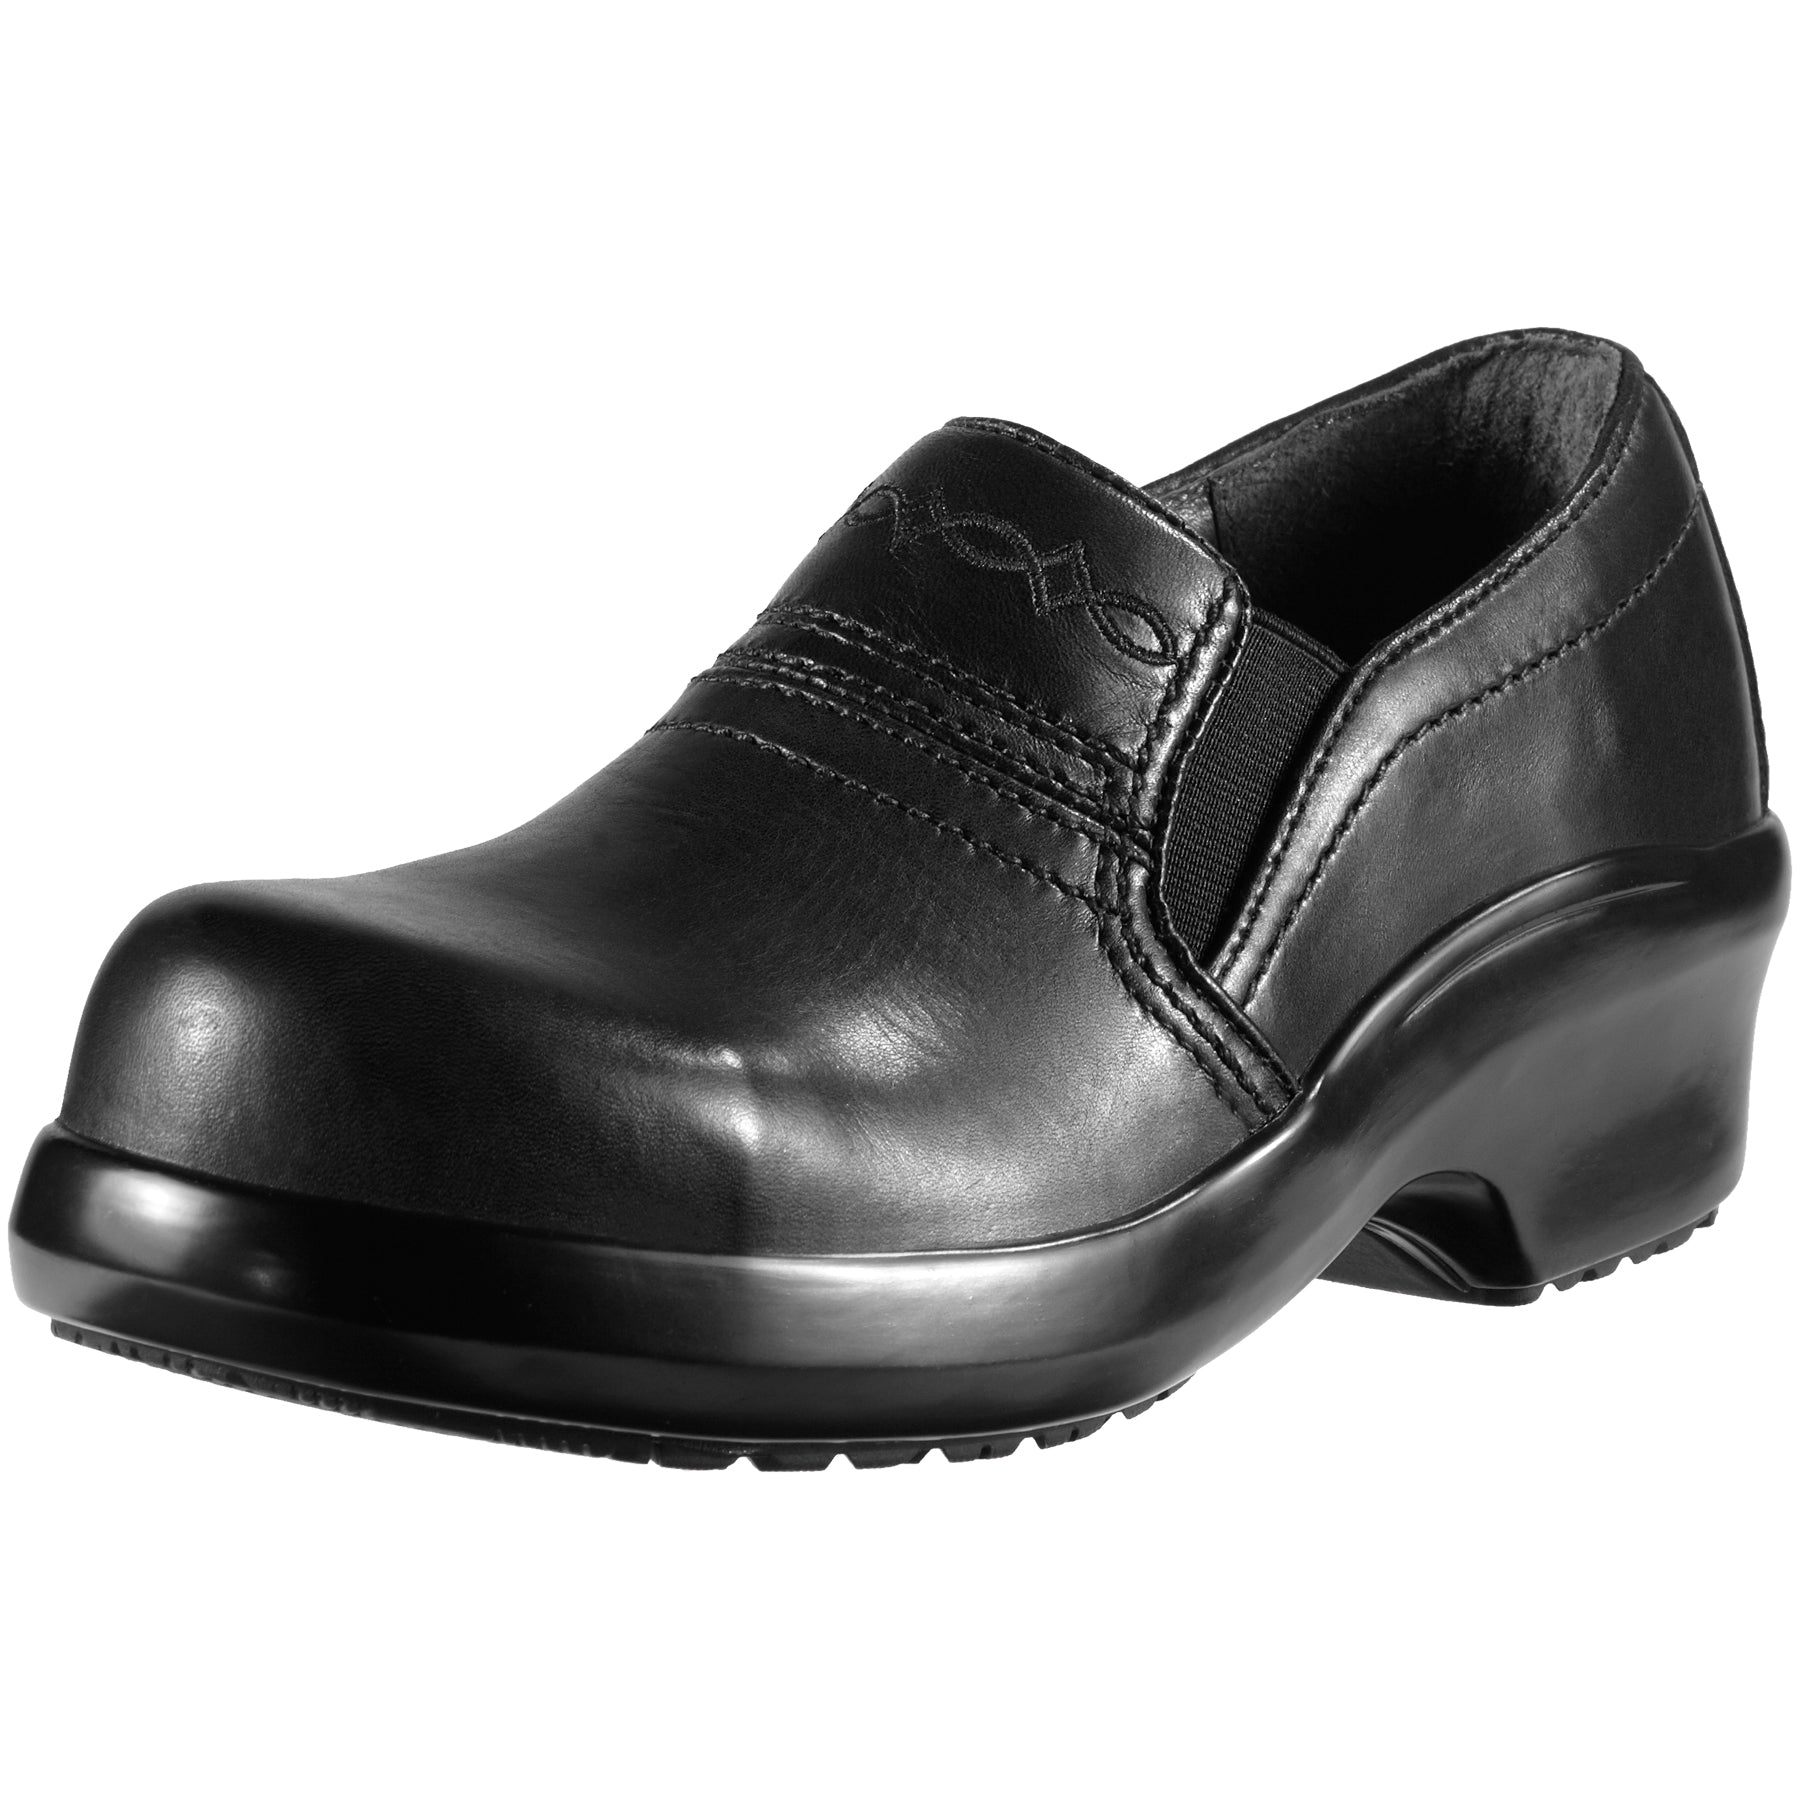 ESD Safety Clog - Black